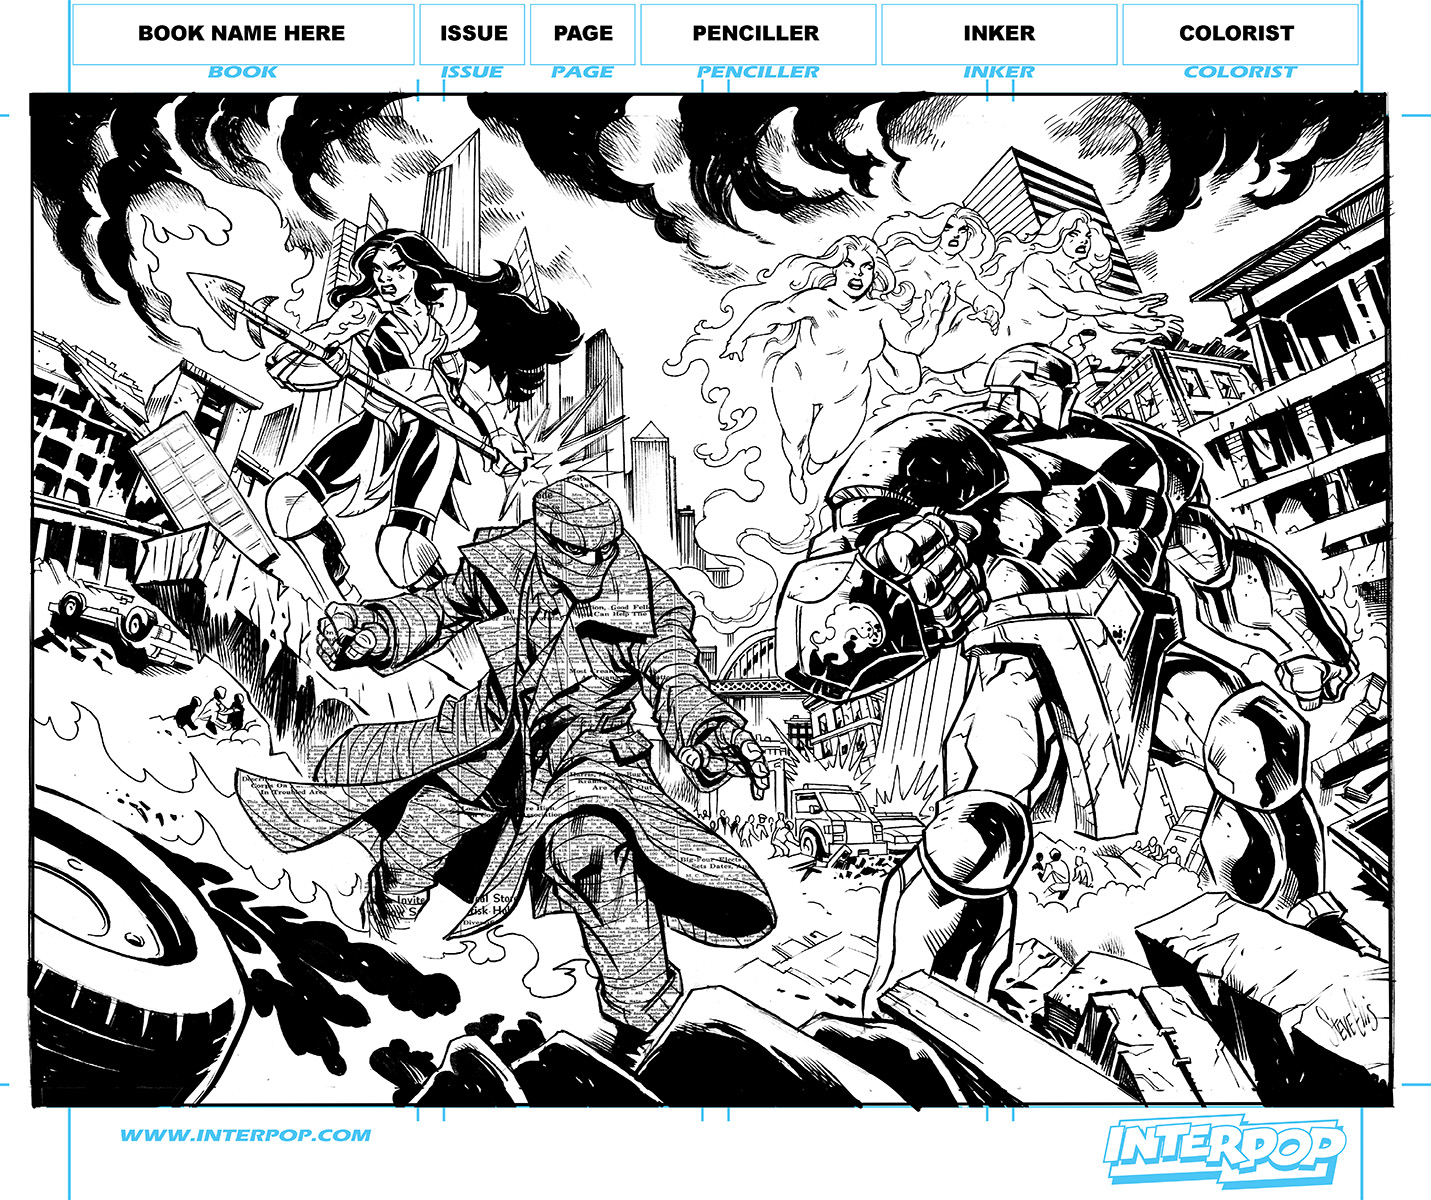 The Nine #0 page 1 inks